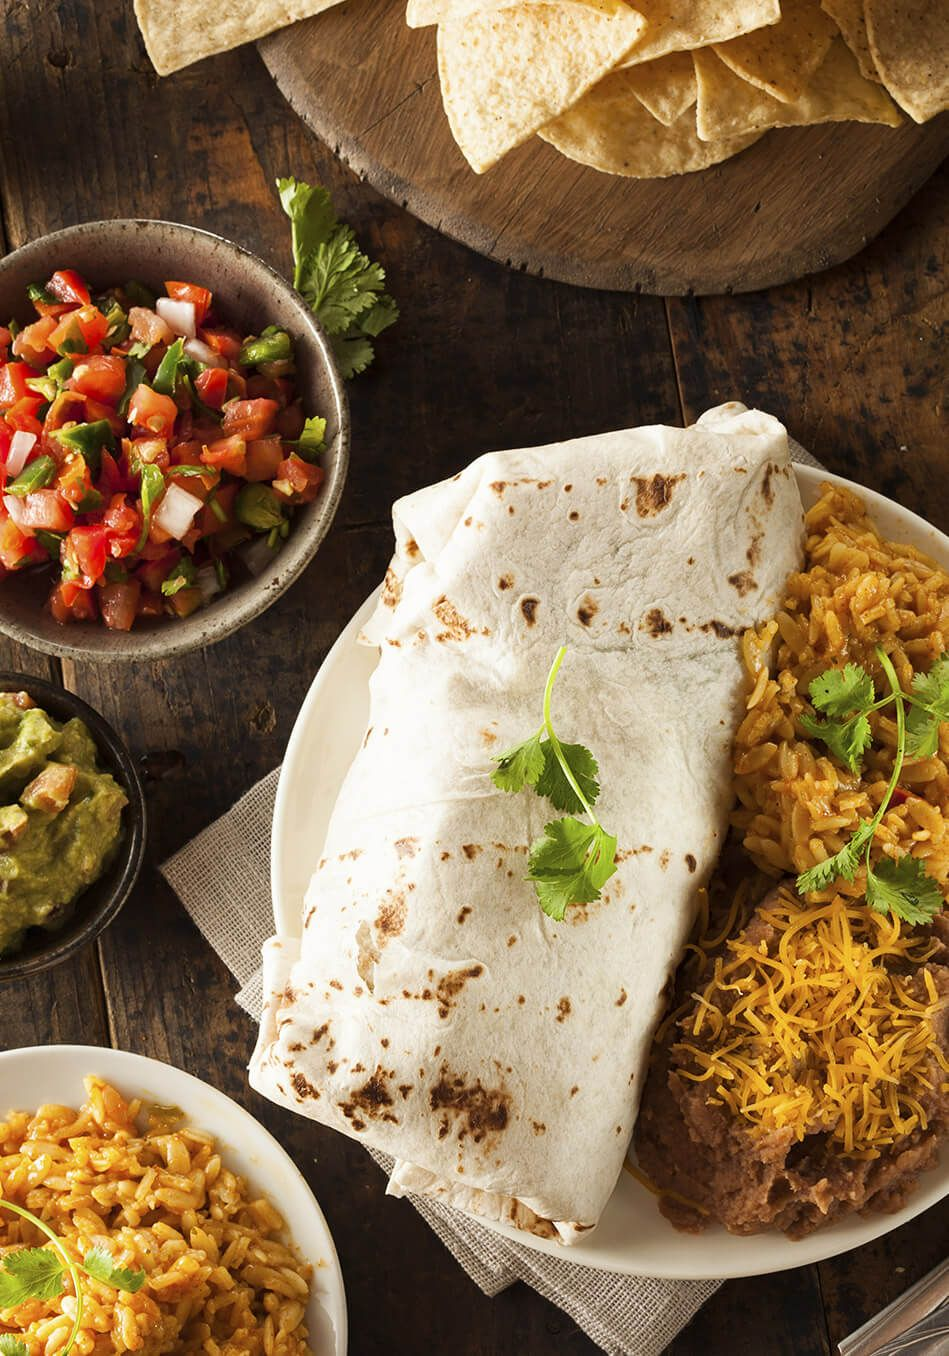 Las mejores recetas de comida mexicana la cocina mexicana tiene you know you can get iron from liver and red meat but if youre in the mood for something different these unexpected alternatives might hit the spot forumfinder Image collections